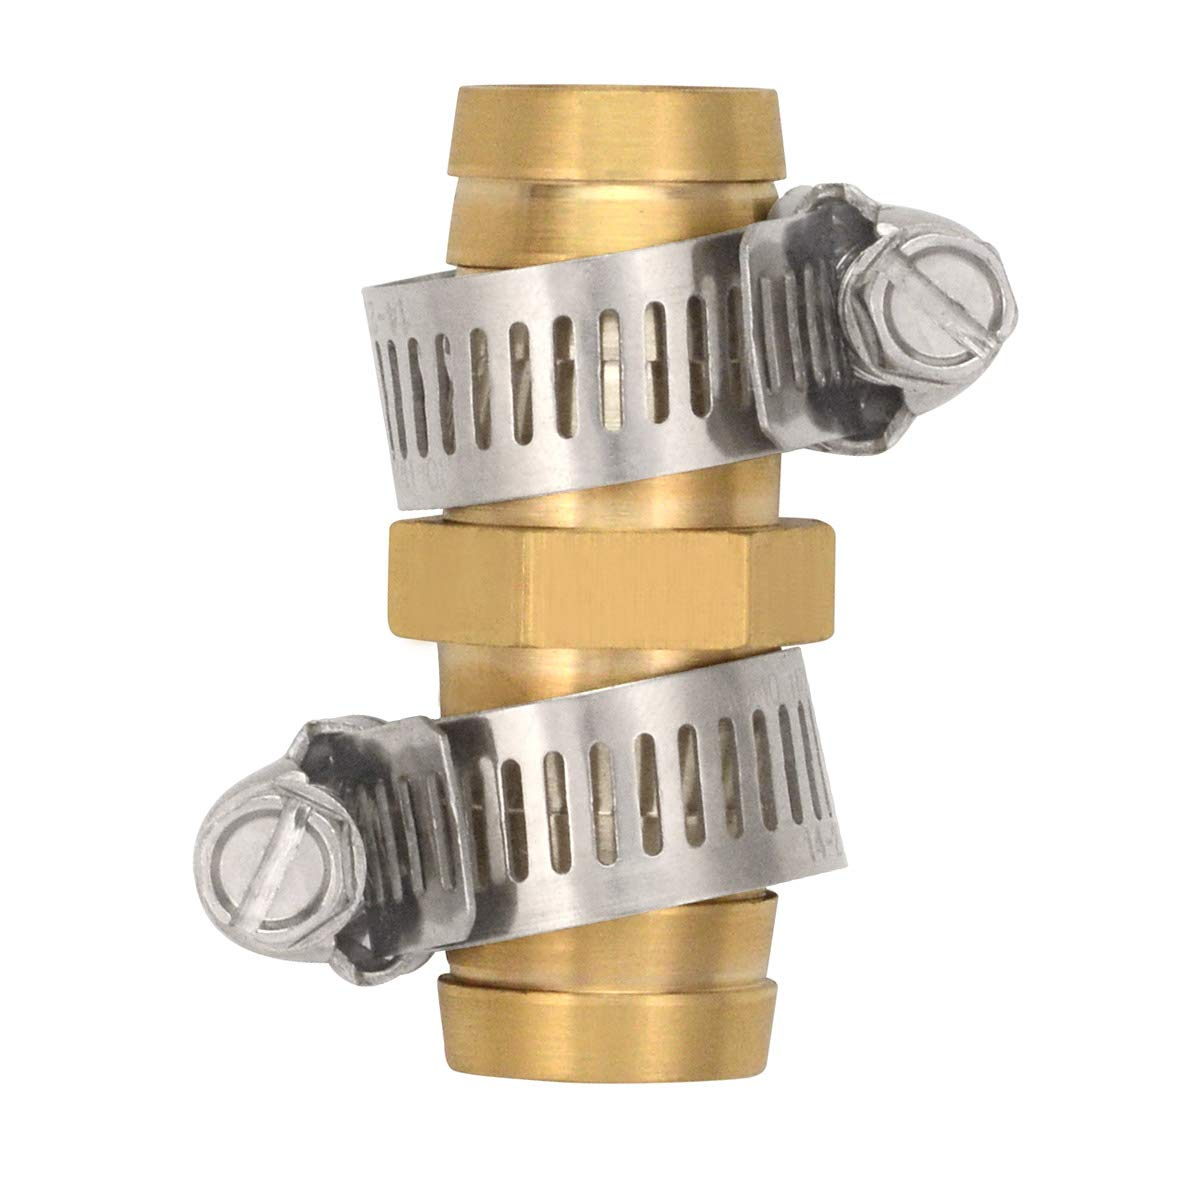 """Gardening Will 5 Pack Brass Barb Straight Joiner 5/8"""" Hose Fitting Air Water Repair Splicer Mender with Clamps"""